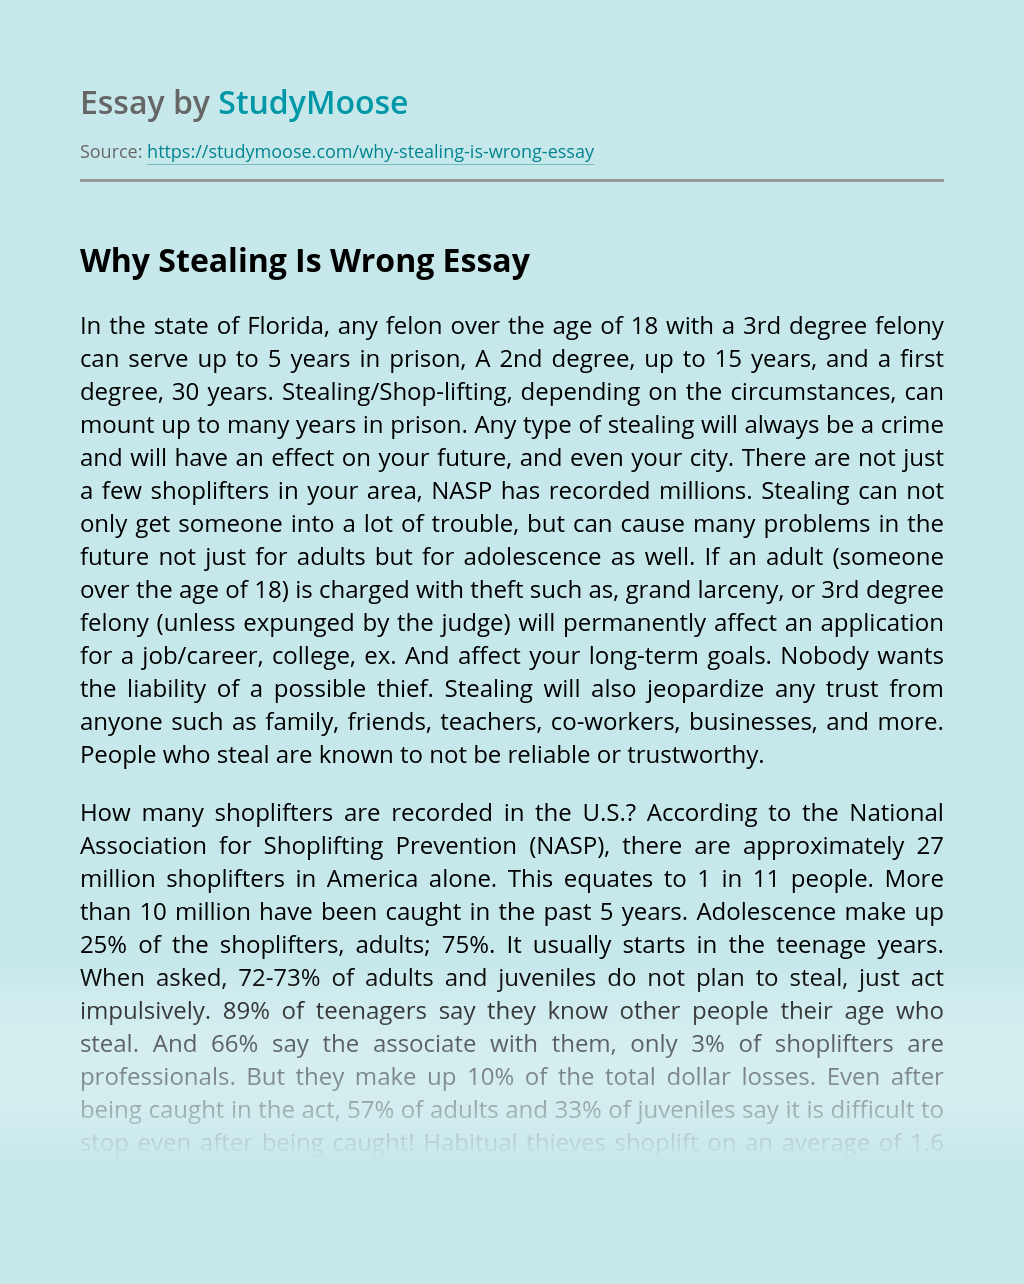 Why Stealing Is Wrong